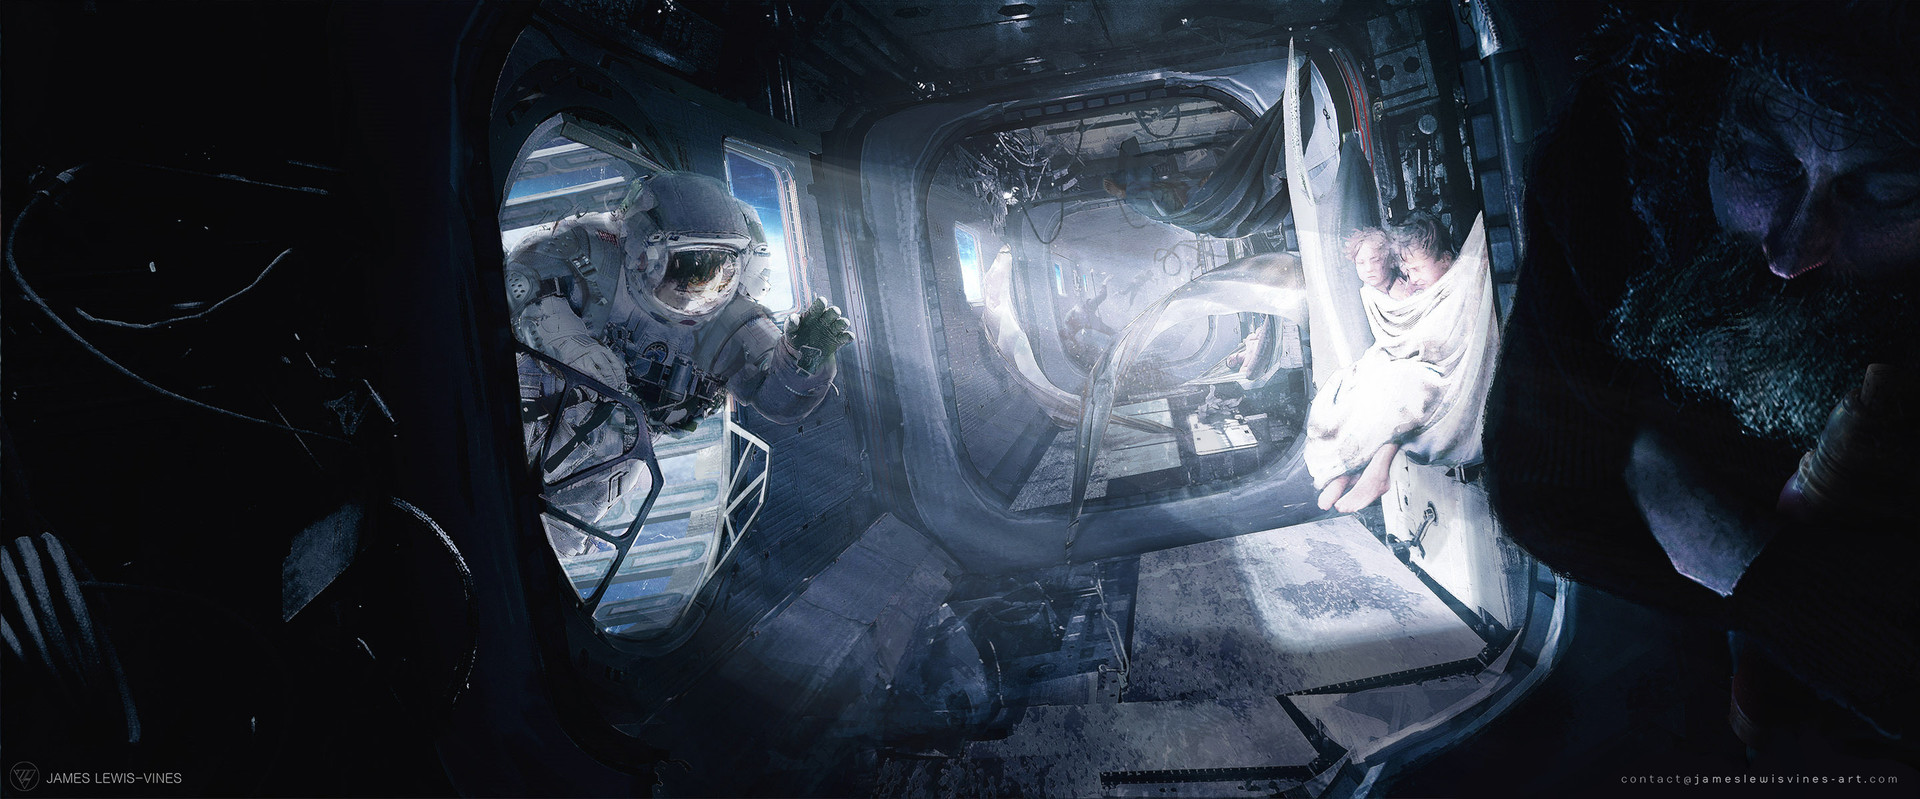 The Sci-Fi Concept Art of James Lewis-Vines